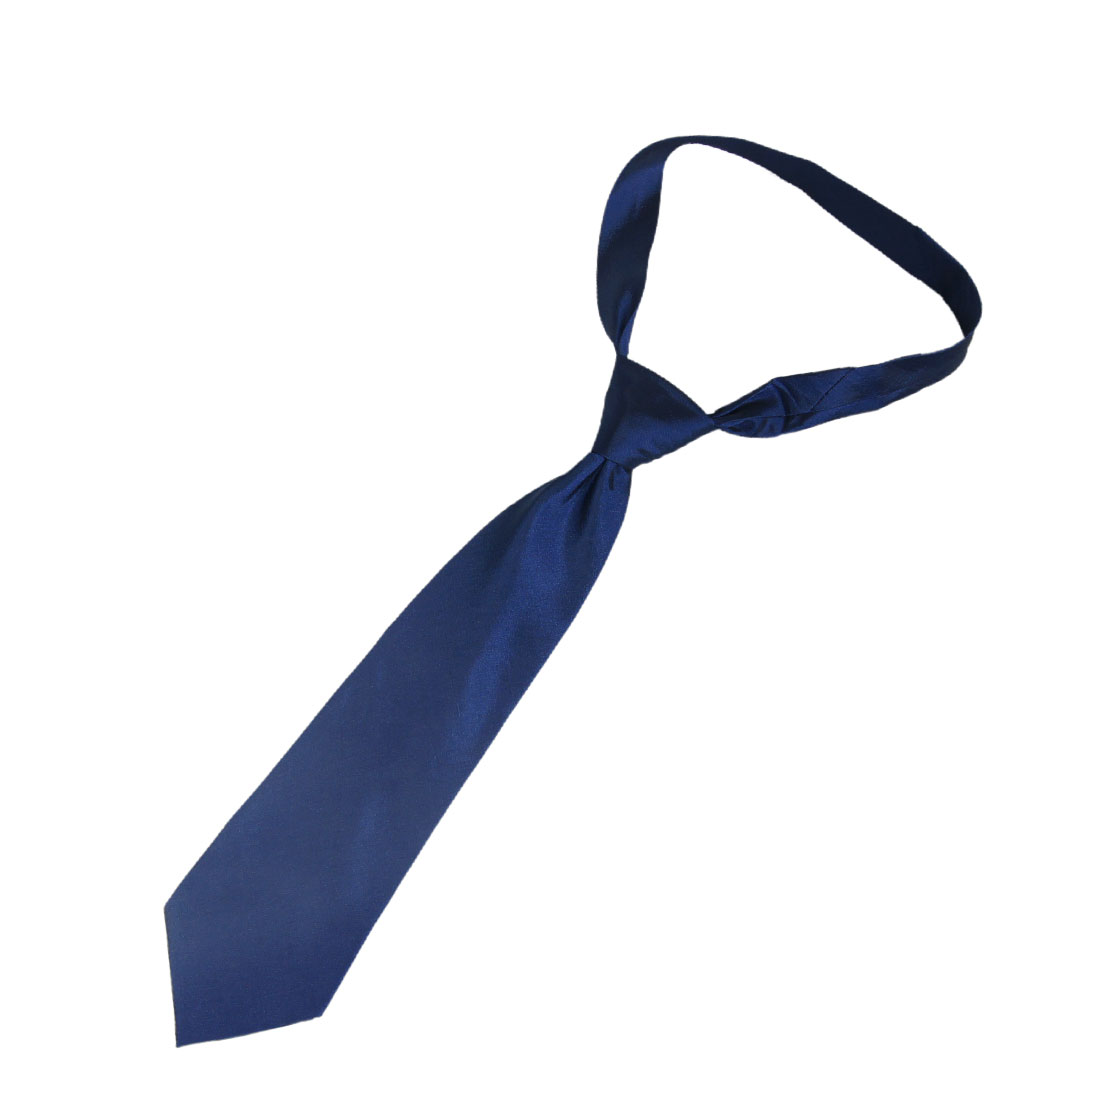 "Neck Detail 59"" Long Pure Pattern Dark Blue Cotton Polyester Neck Tie for Man"